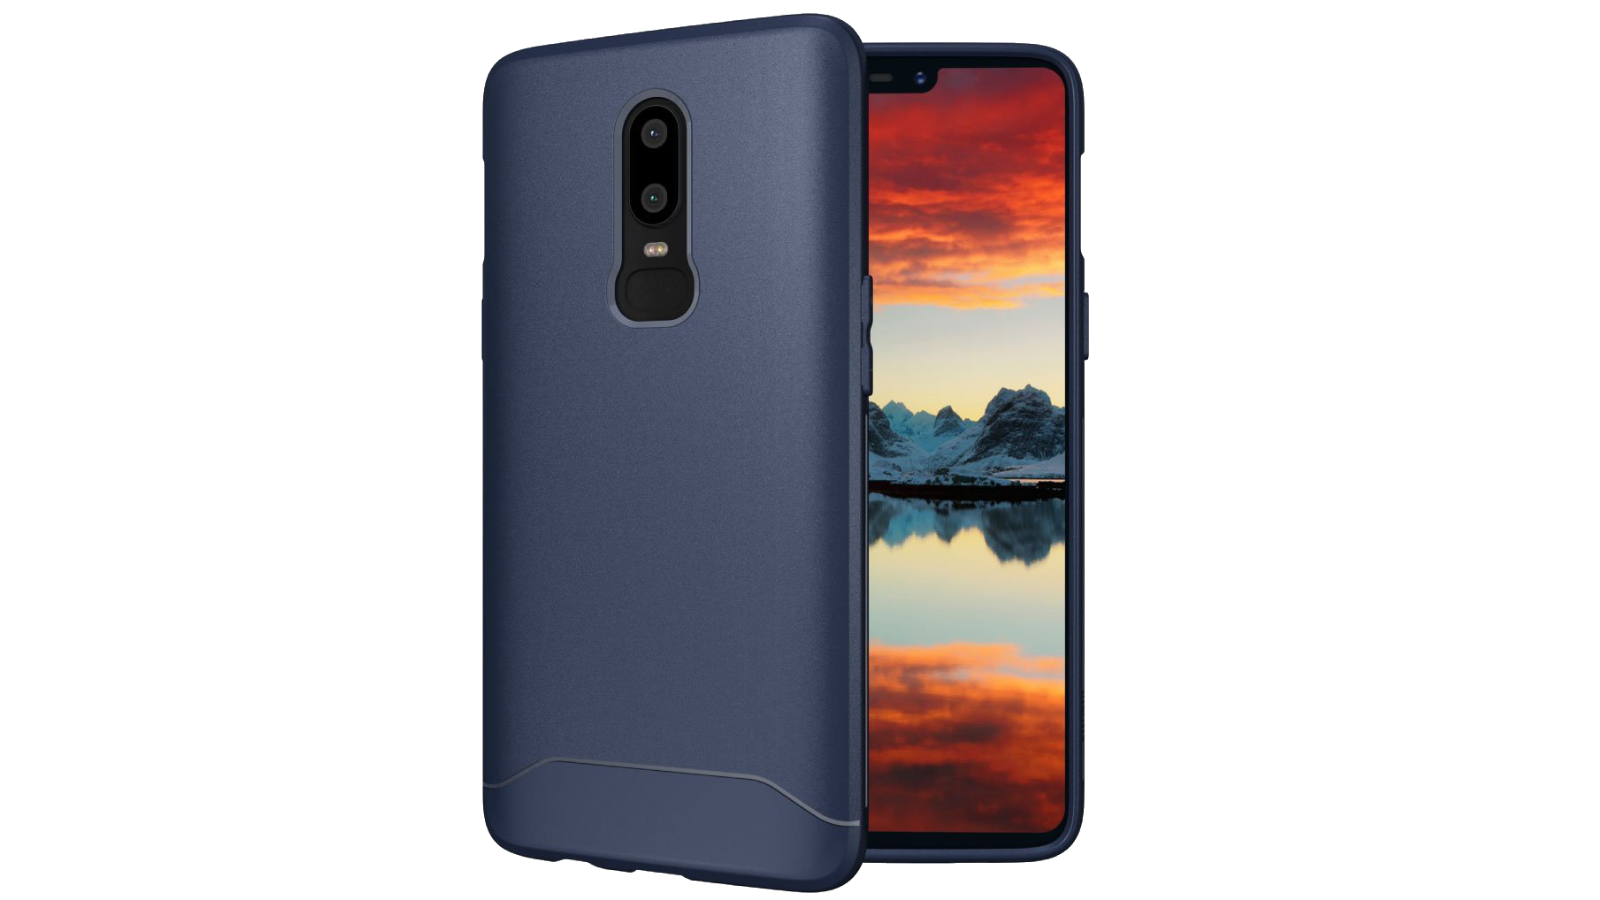 The Otterbox Commuter case may be expensive at $39.95, but preventing serious damage to your OnePlus 6 is well be worth that cost.